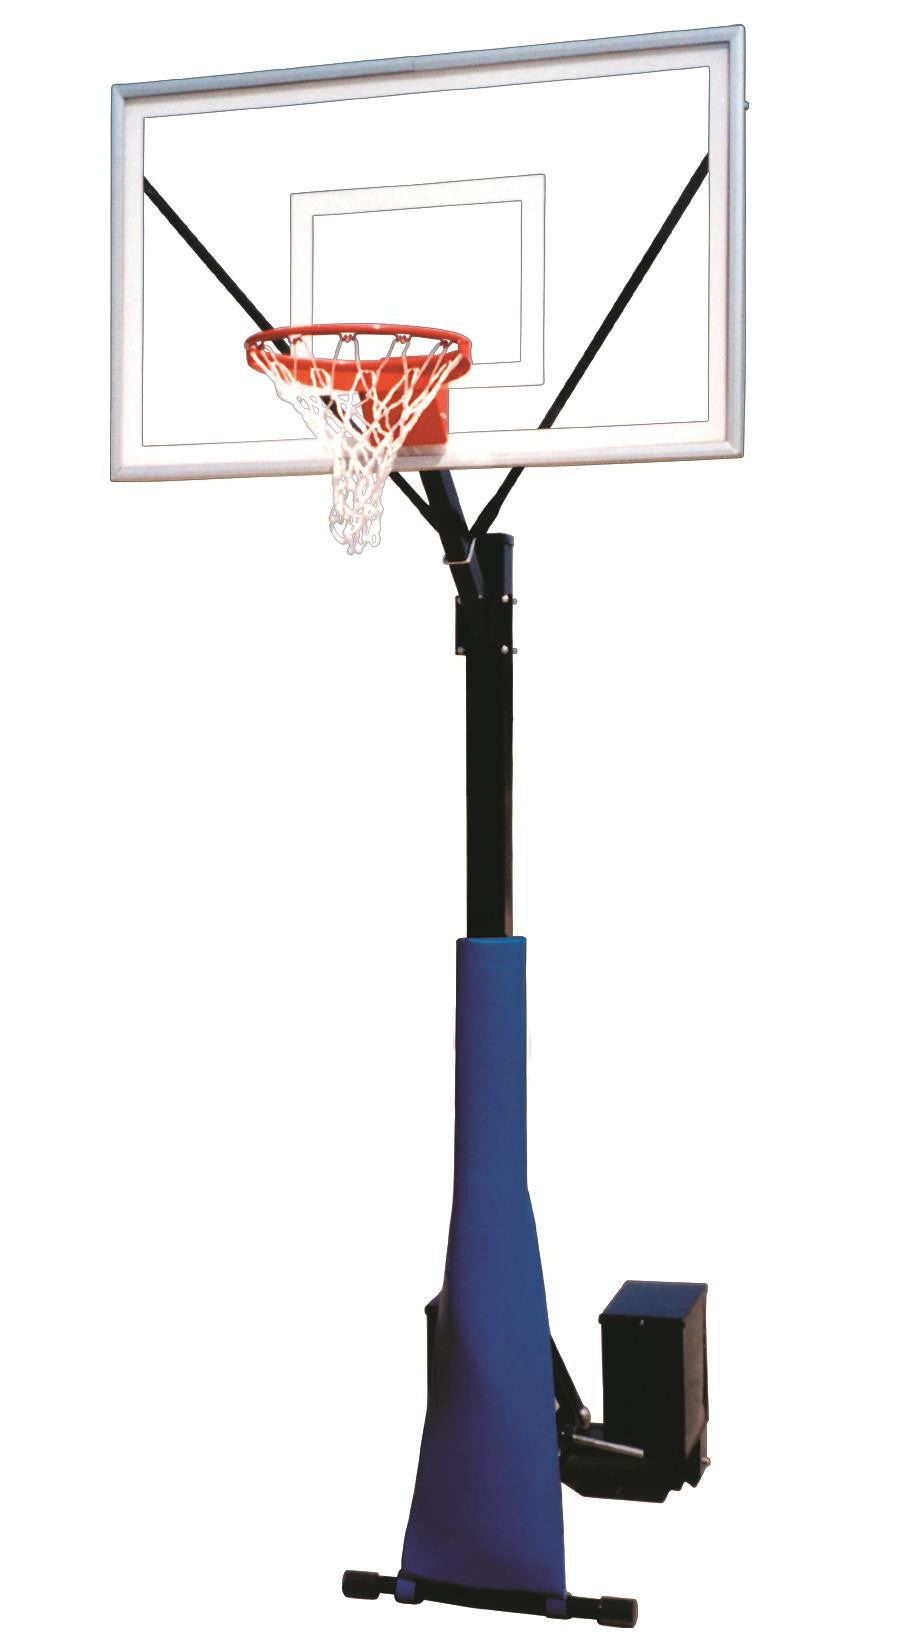 First Team Rolla Sport Select Portable Fixed Height Basketball Hoop 60 inch Acrylic